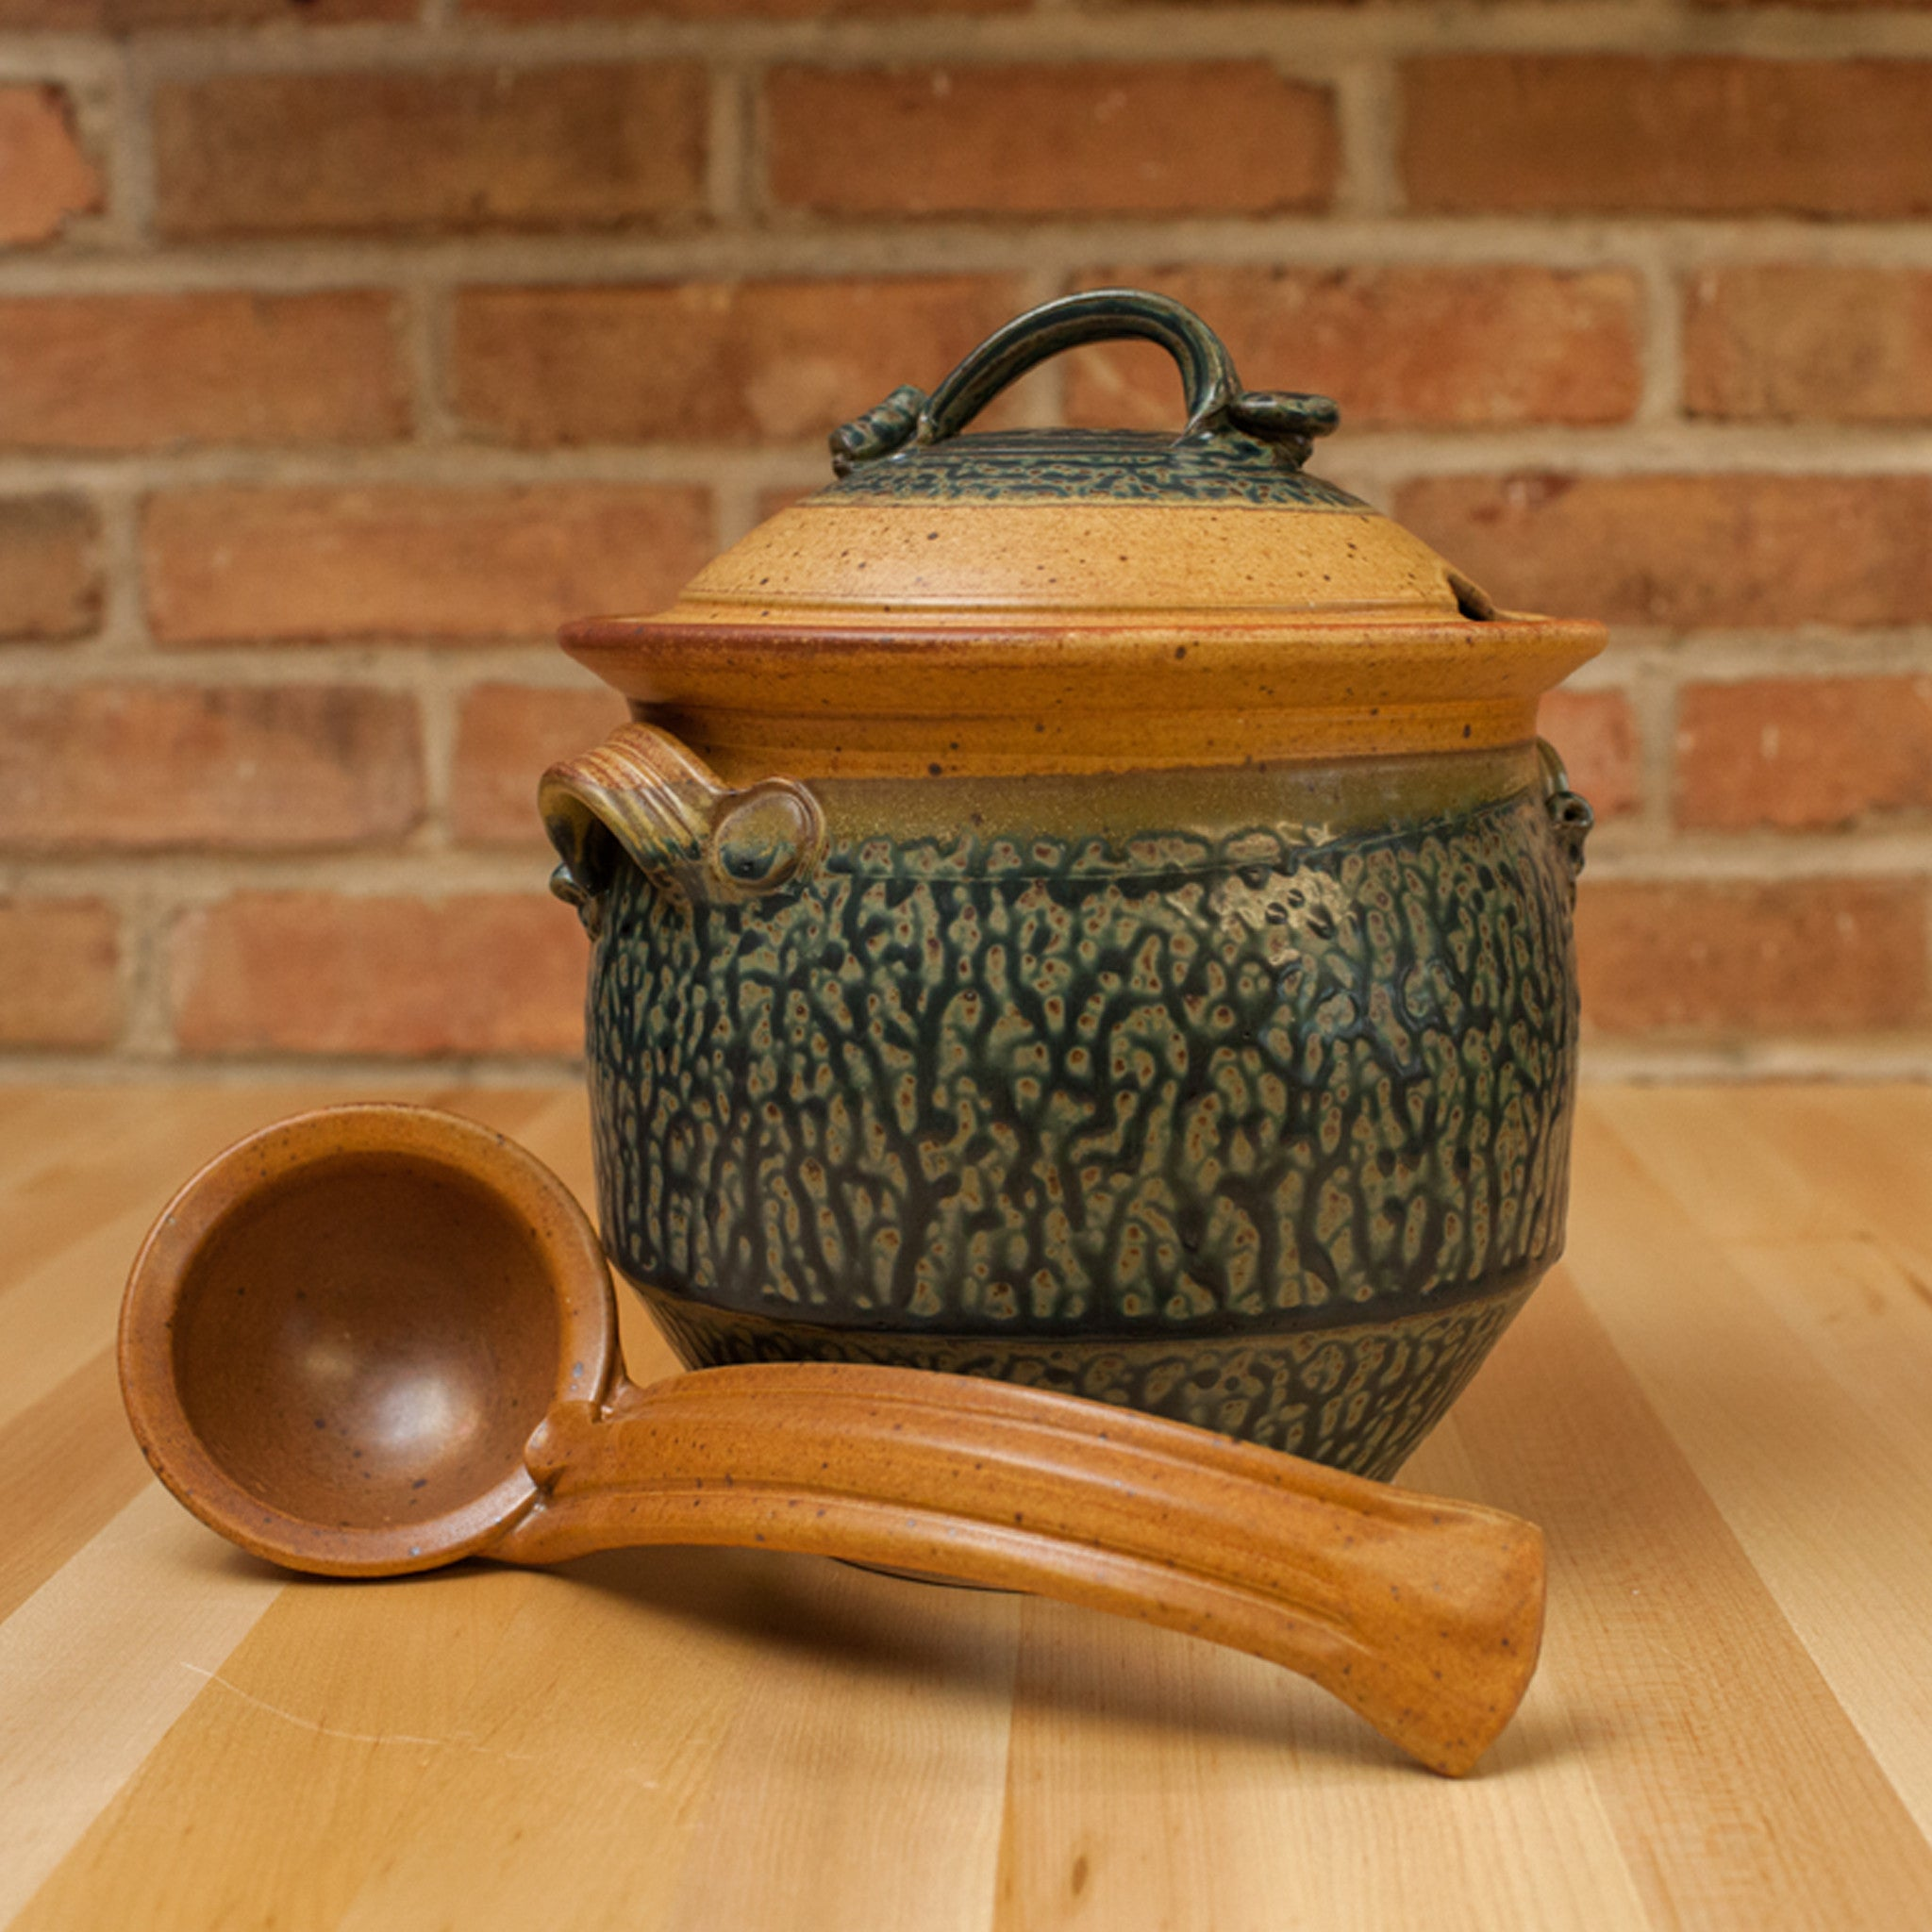 Royce Yoder - Tureen with Ladle in Tan | Ash Glaze